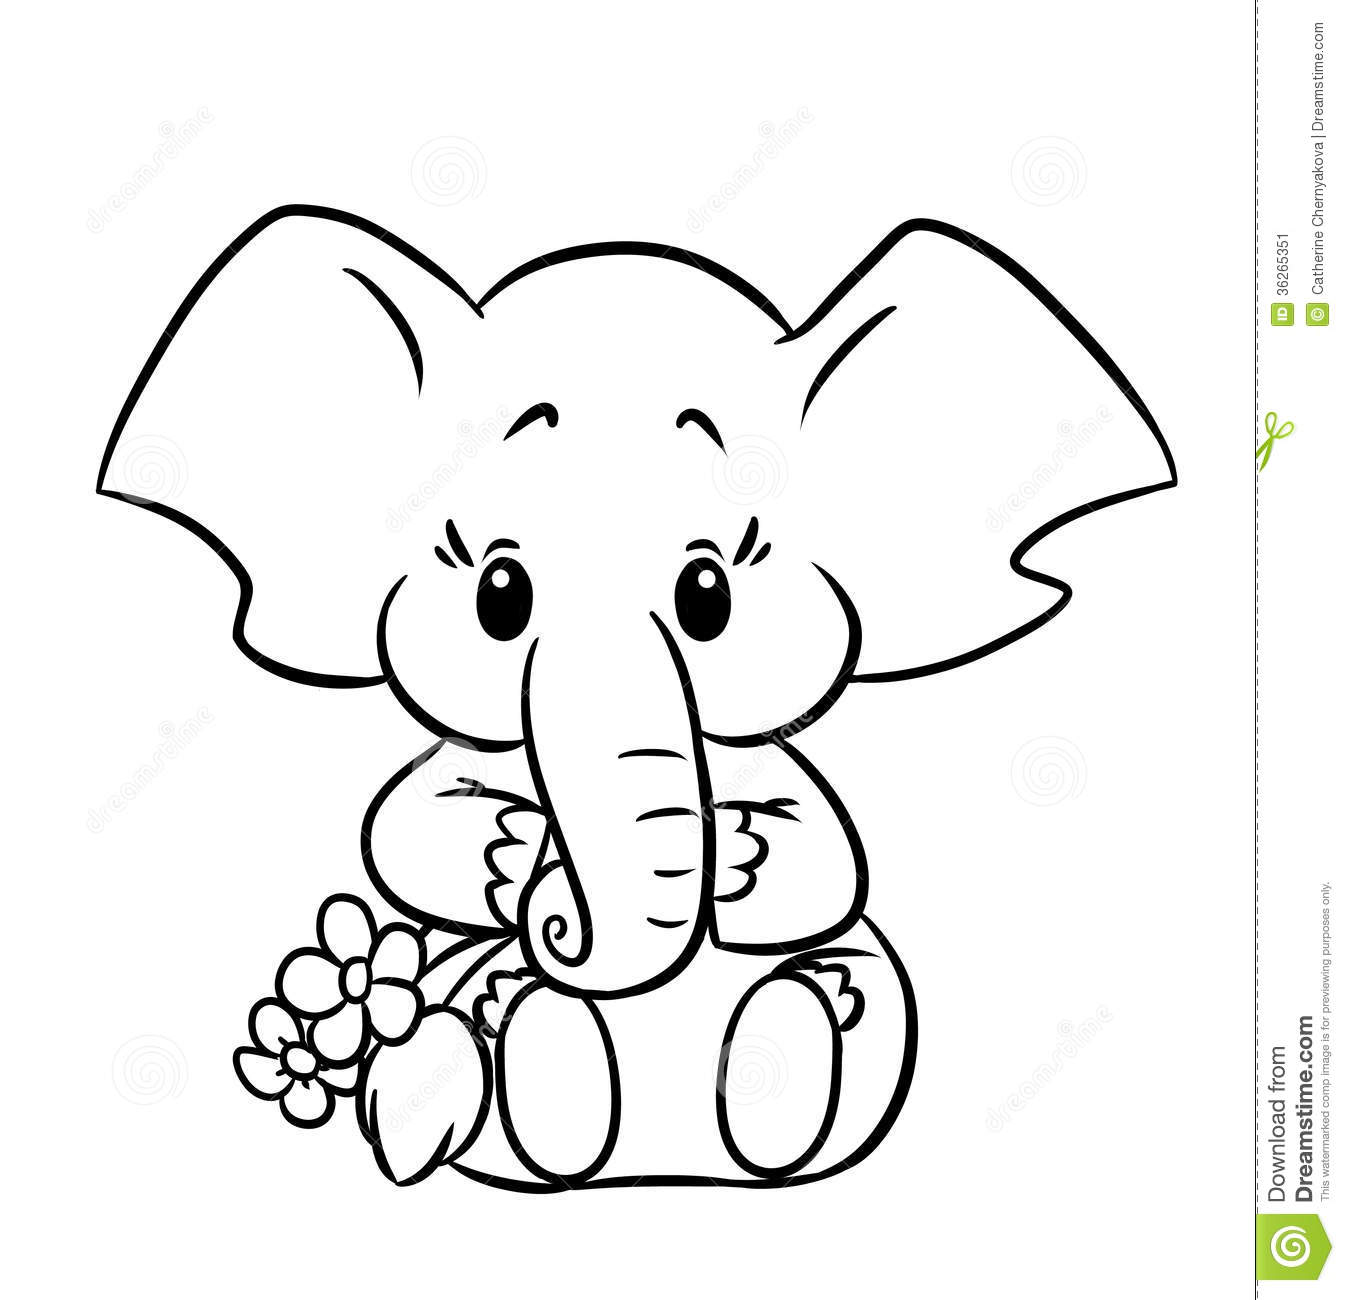 little Elephant coloring page